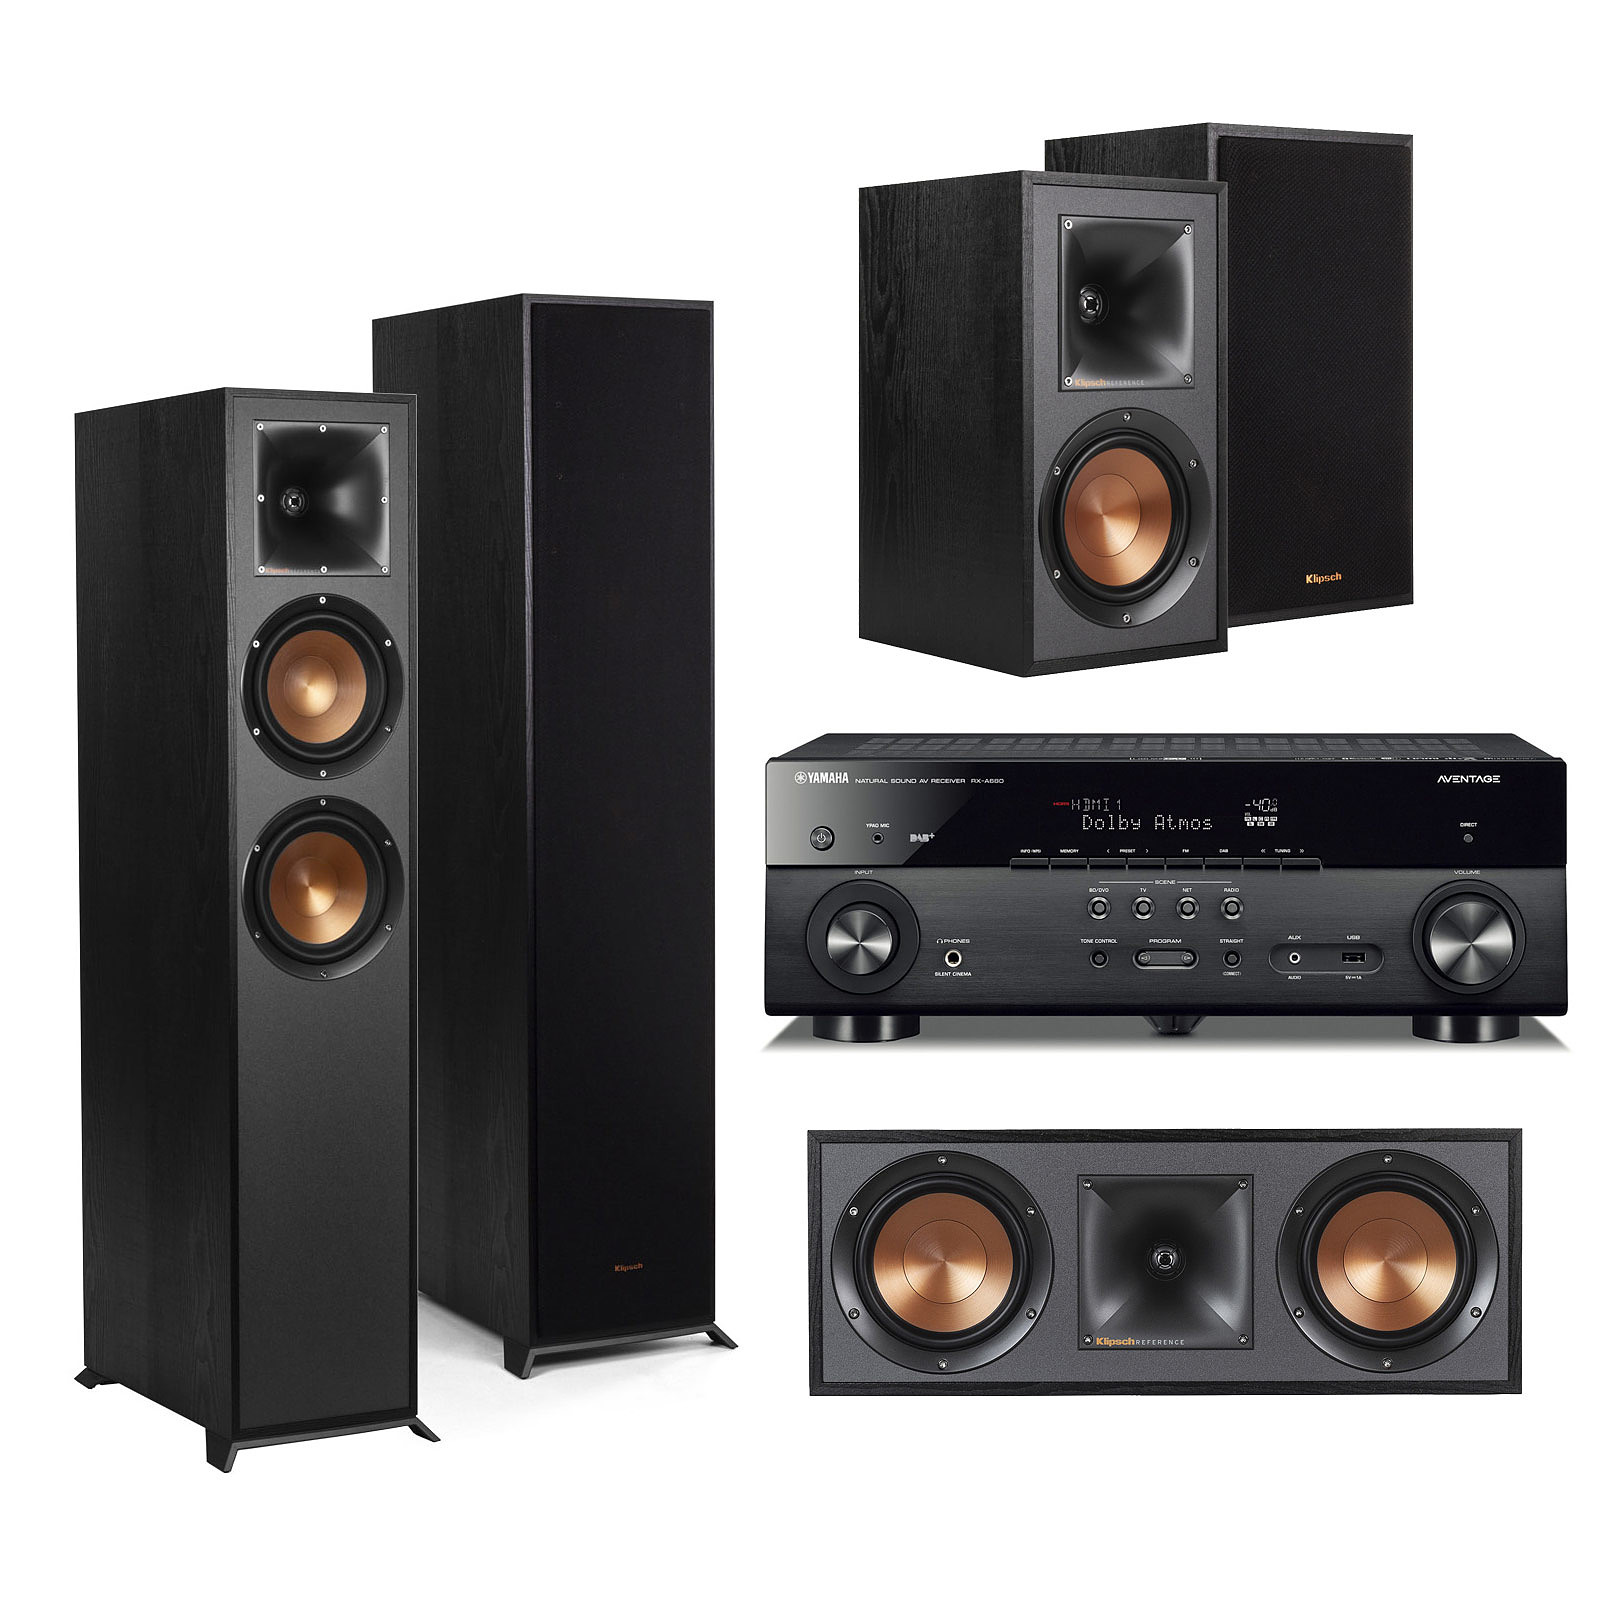 yamaha musiccast rx a680 noir klipsch pack 620 5 0 ensemble home cin ma yamaha sur. Black Bedroom Furniture Sets. Home Design Ideas